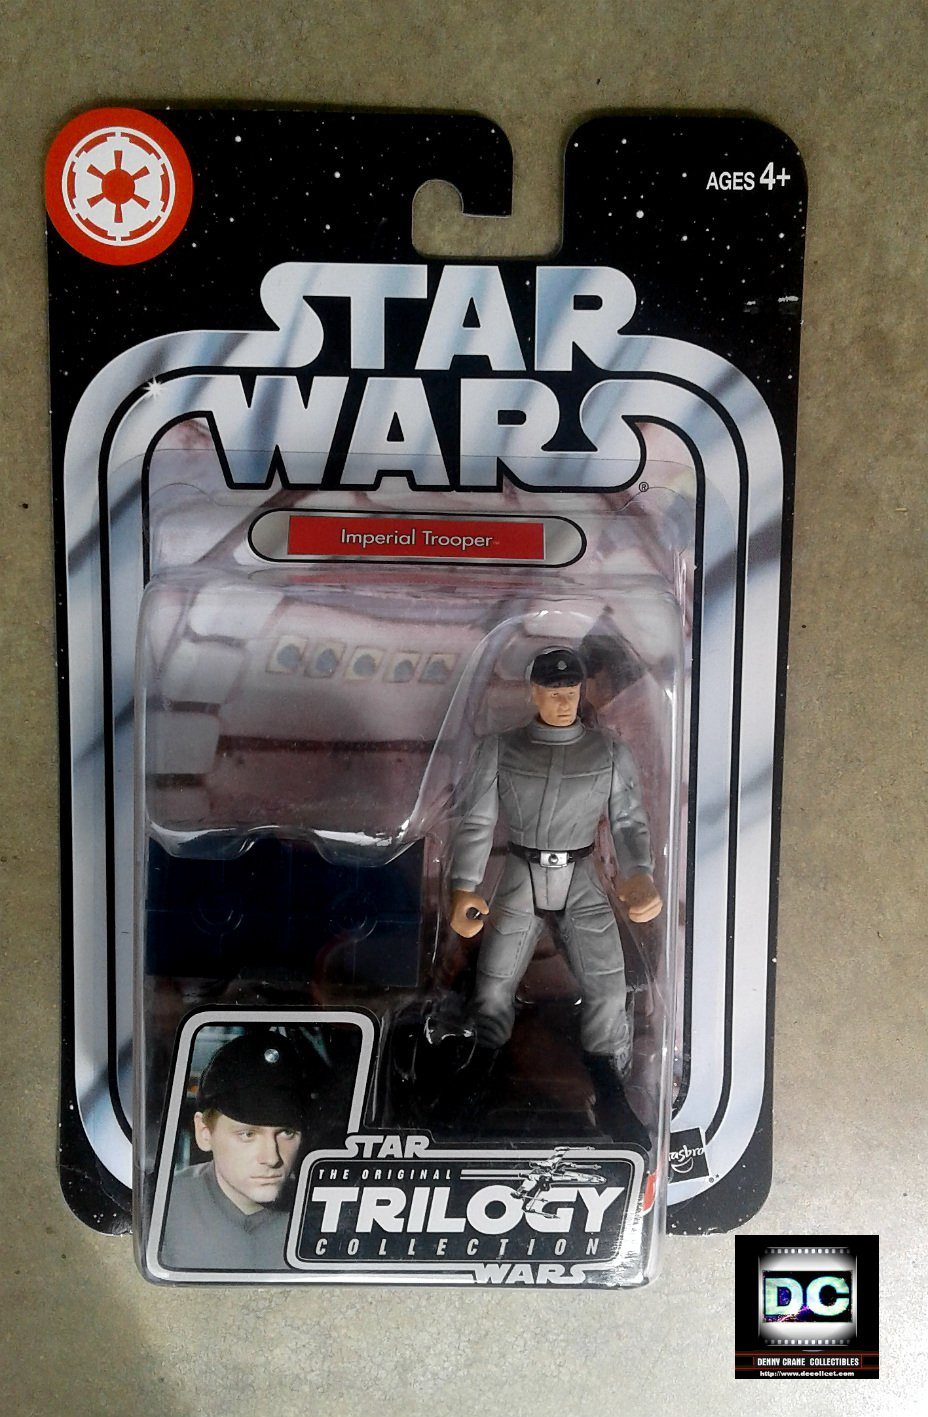 Death Star Imperial Scanning Crew Trooper, Star Wars: ANH OTC #38 2004 Trilogy Hasbro #85447